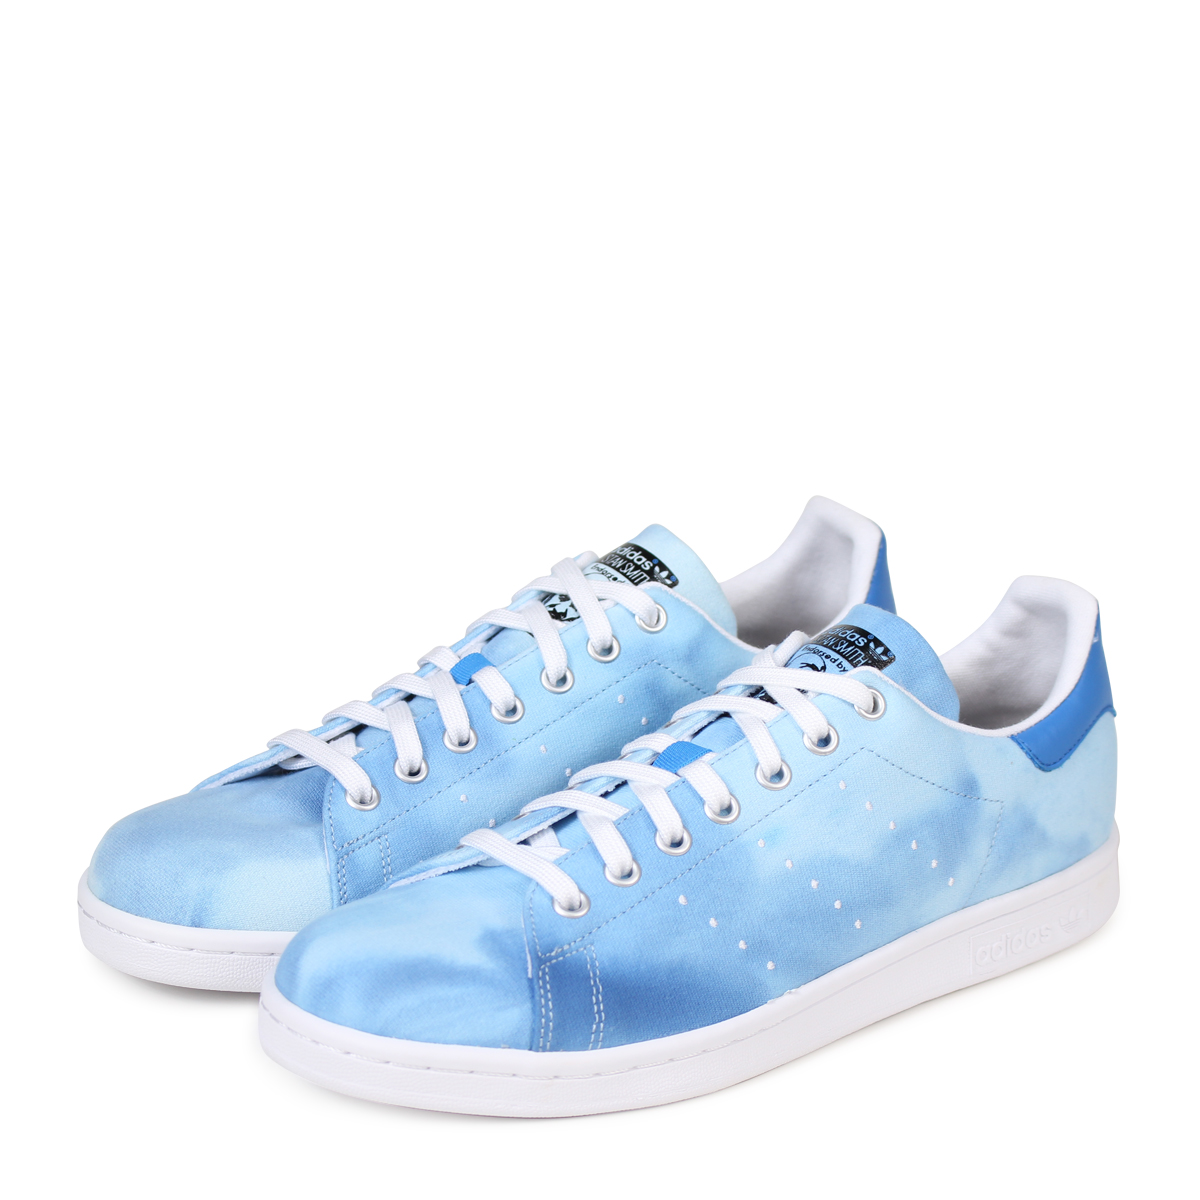 198fe4598c514 ALLSPORTS  adidas Originals PW HU HOLI STAN SMITH Adidas Stan Smith sneakers  Farrell Williams men collaboration AC7045 blue originals  load planned  Shinnyu ...